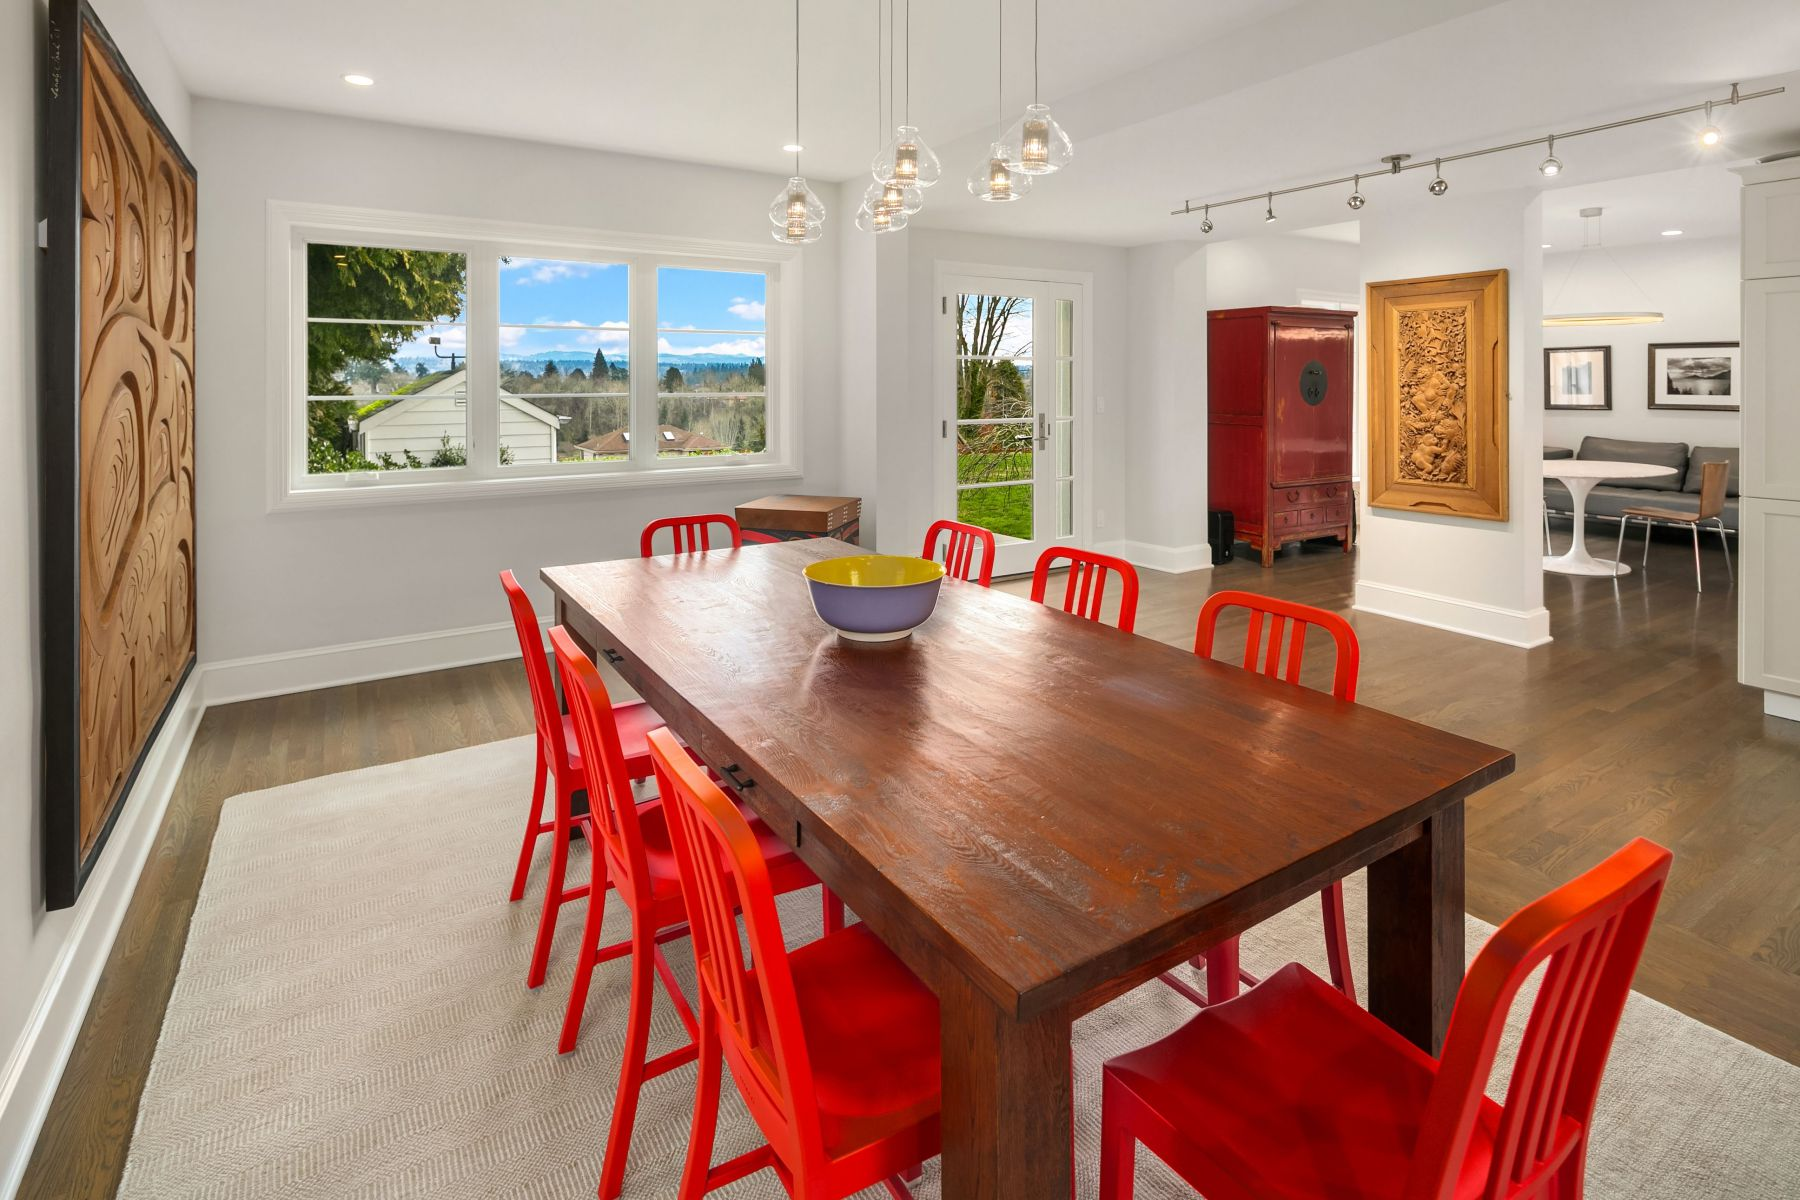 3846 Cascadia Avenue S, Seattle | Represented by Becky Gray and Alex Gray